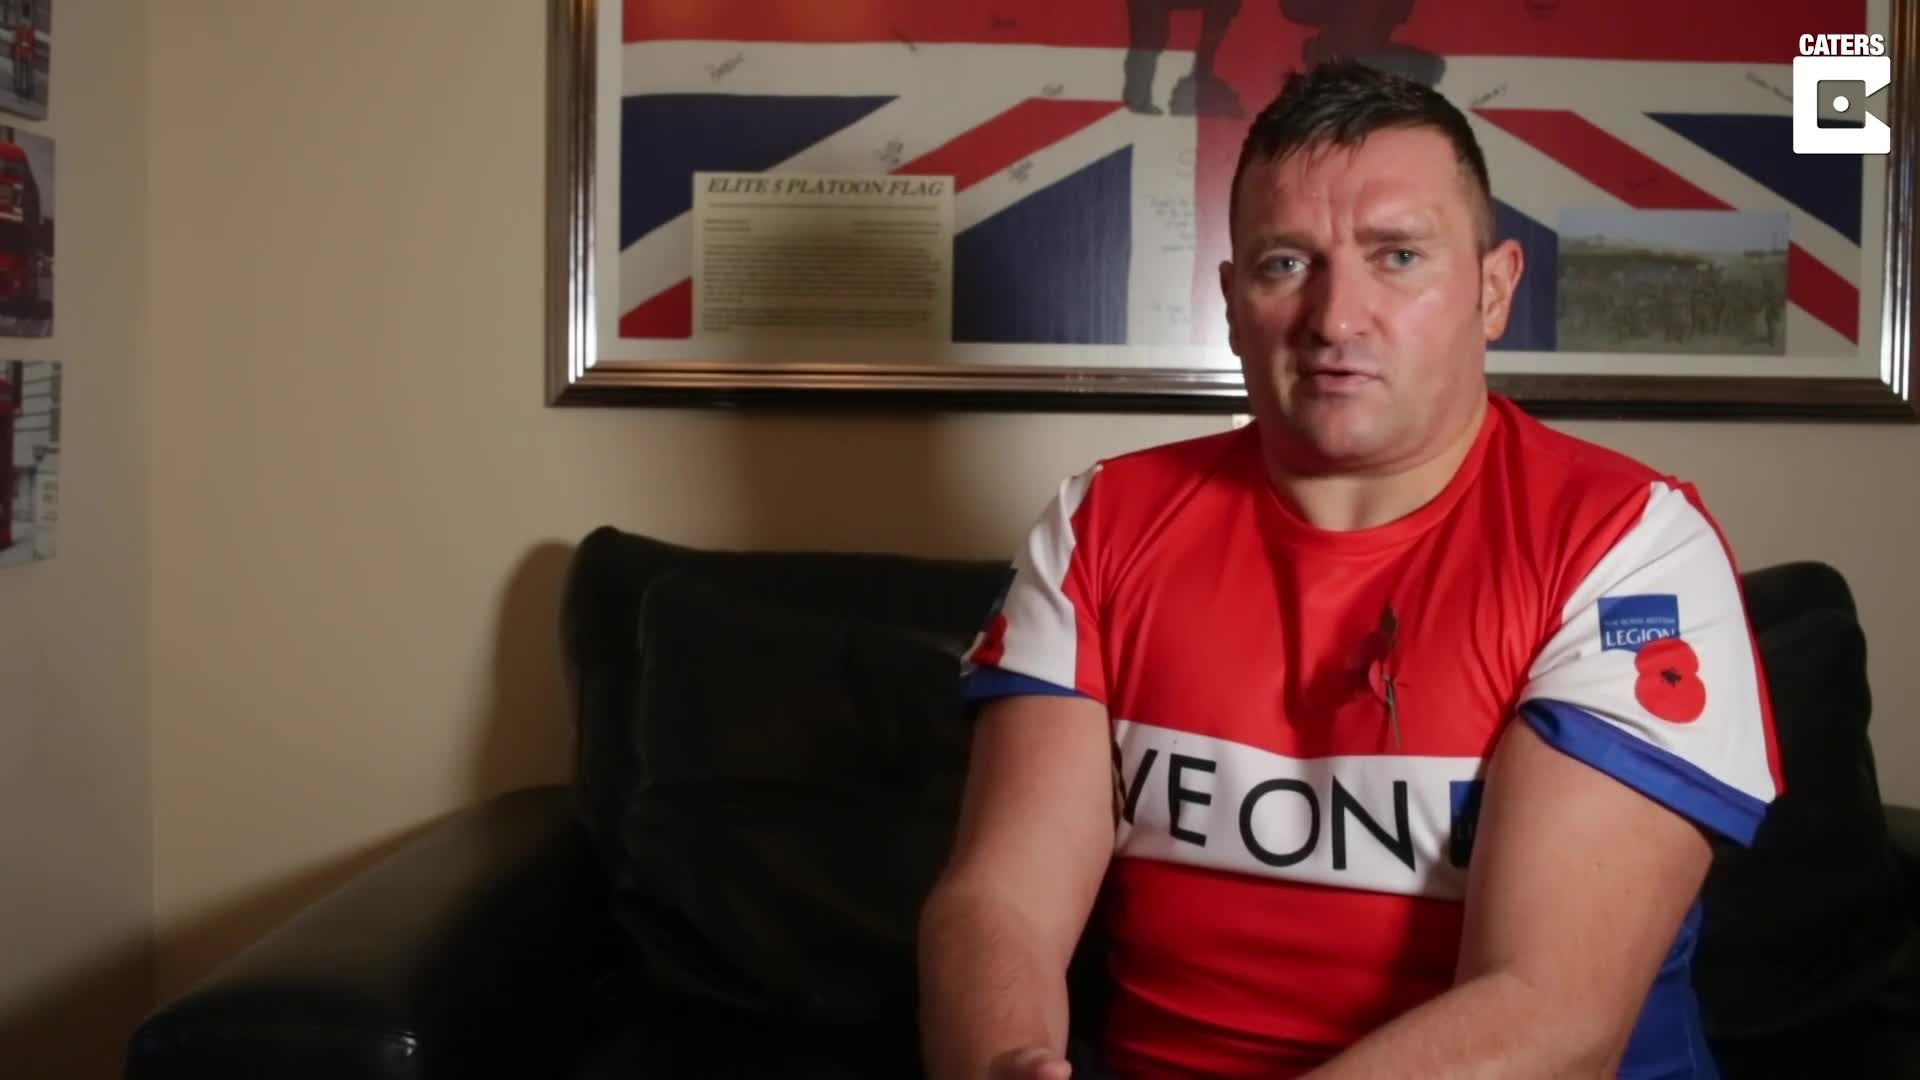 FORMER SOLDIER WHO SERVED IN TWO WARS LEARNS HOW TO WALK AND TALK AGAIN AFTER BRUTAL ATTACK ON NIGHT OUT